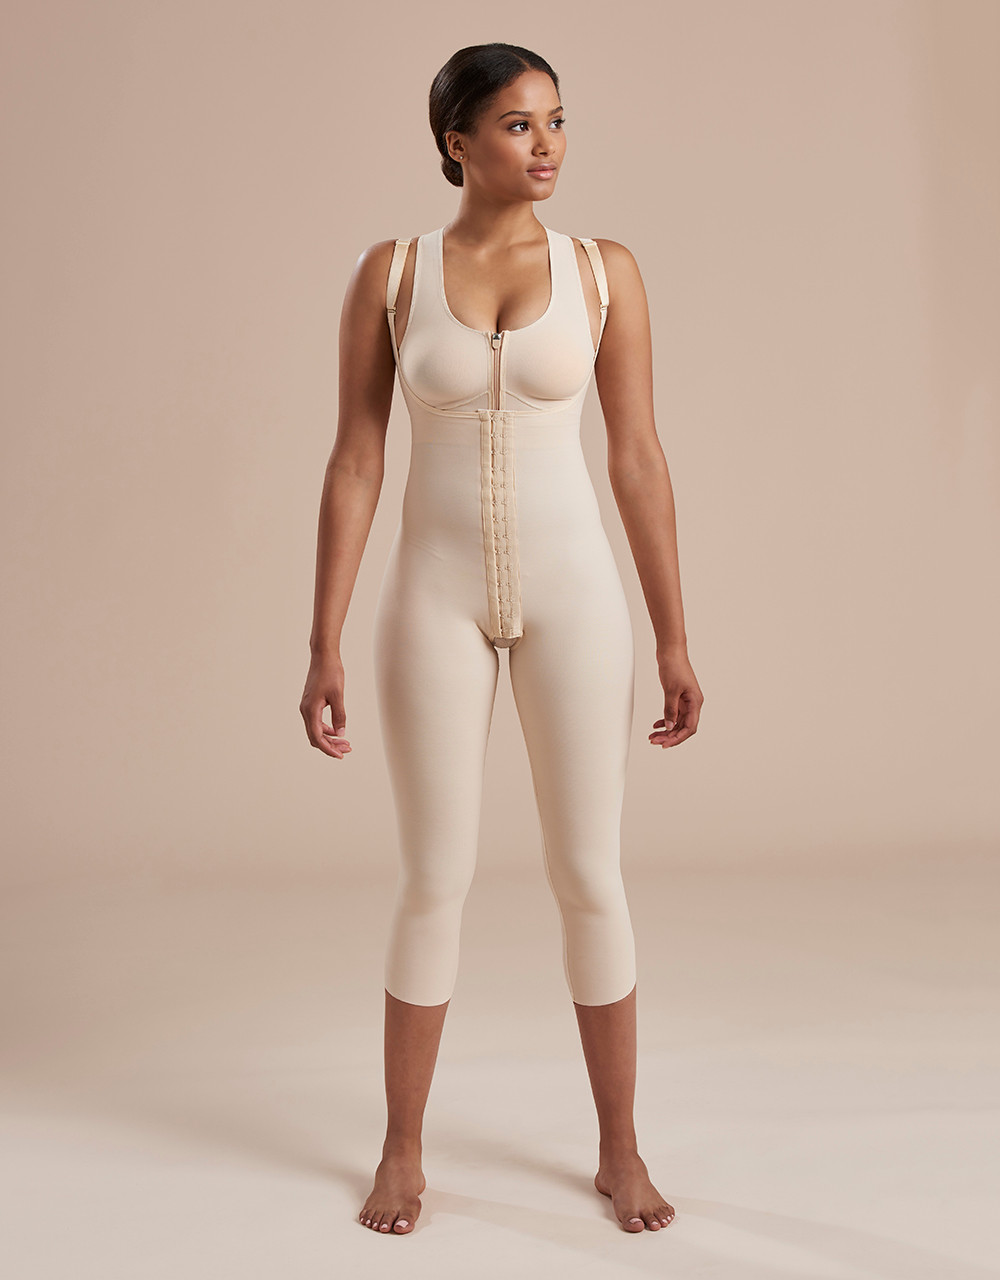 062943dd782 Marena Recovery SFBHM capri length girdle with high-back